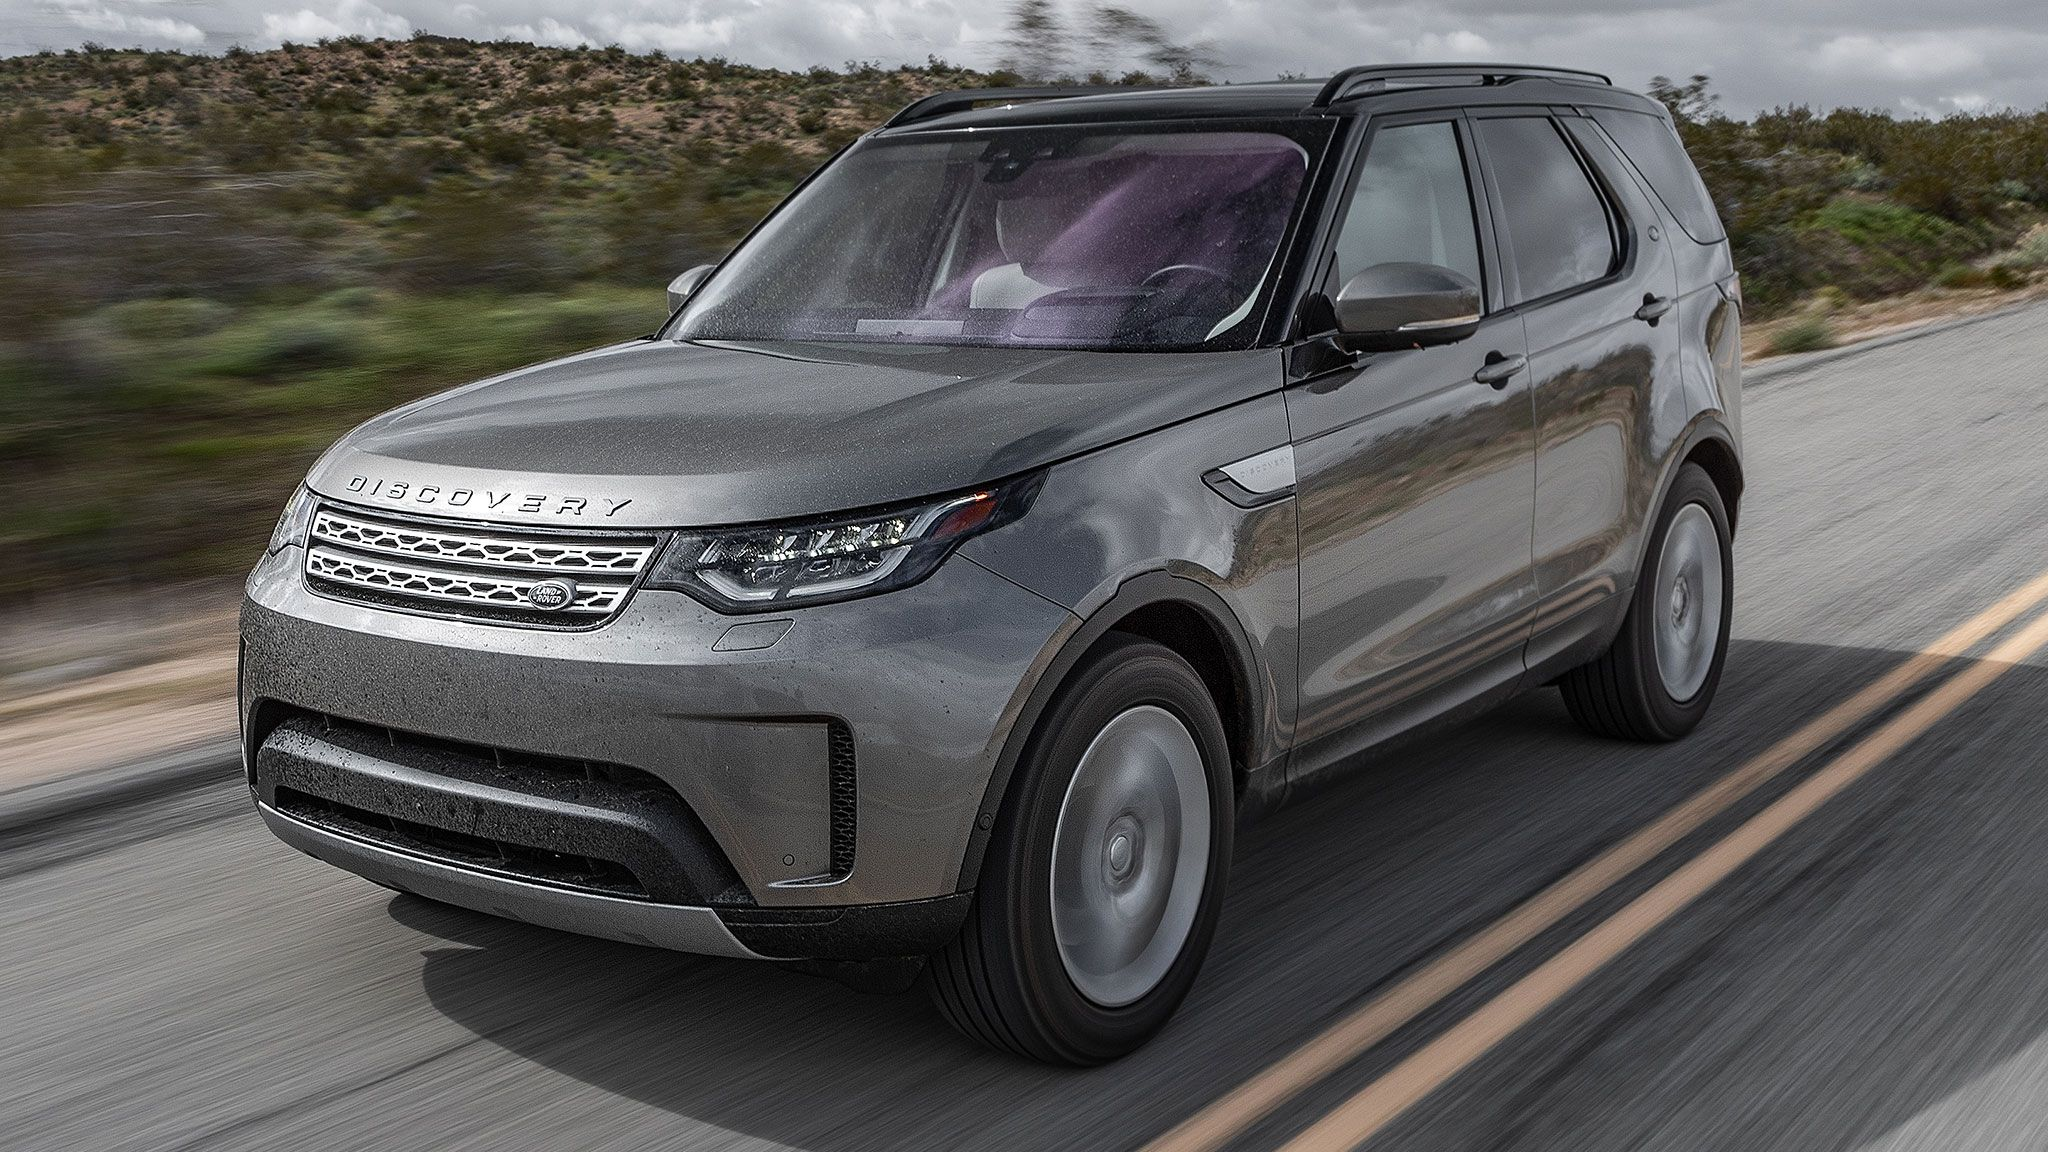 One Week With the 2020 Land Rover Discovery in 2020 Land